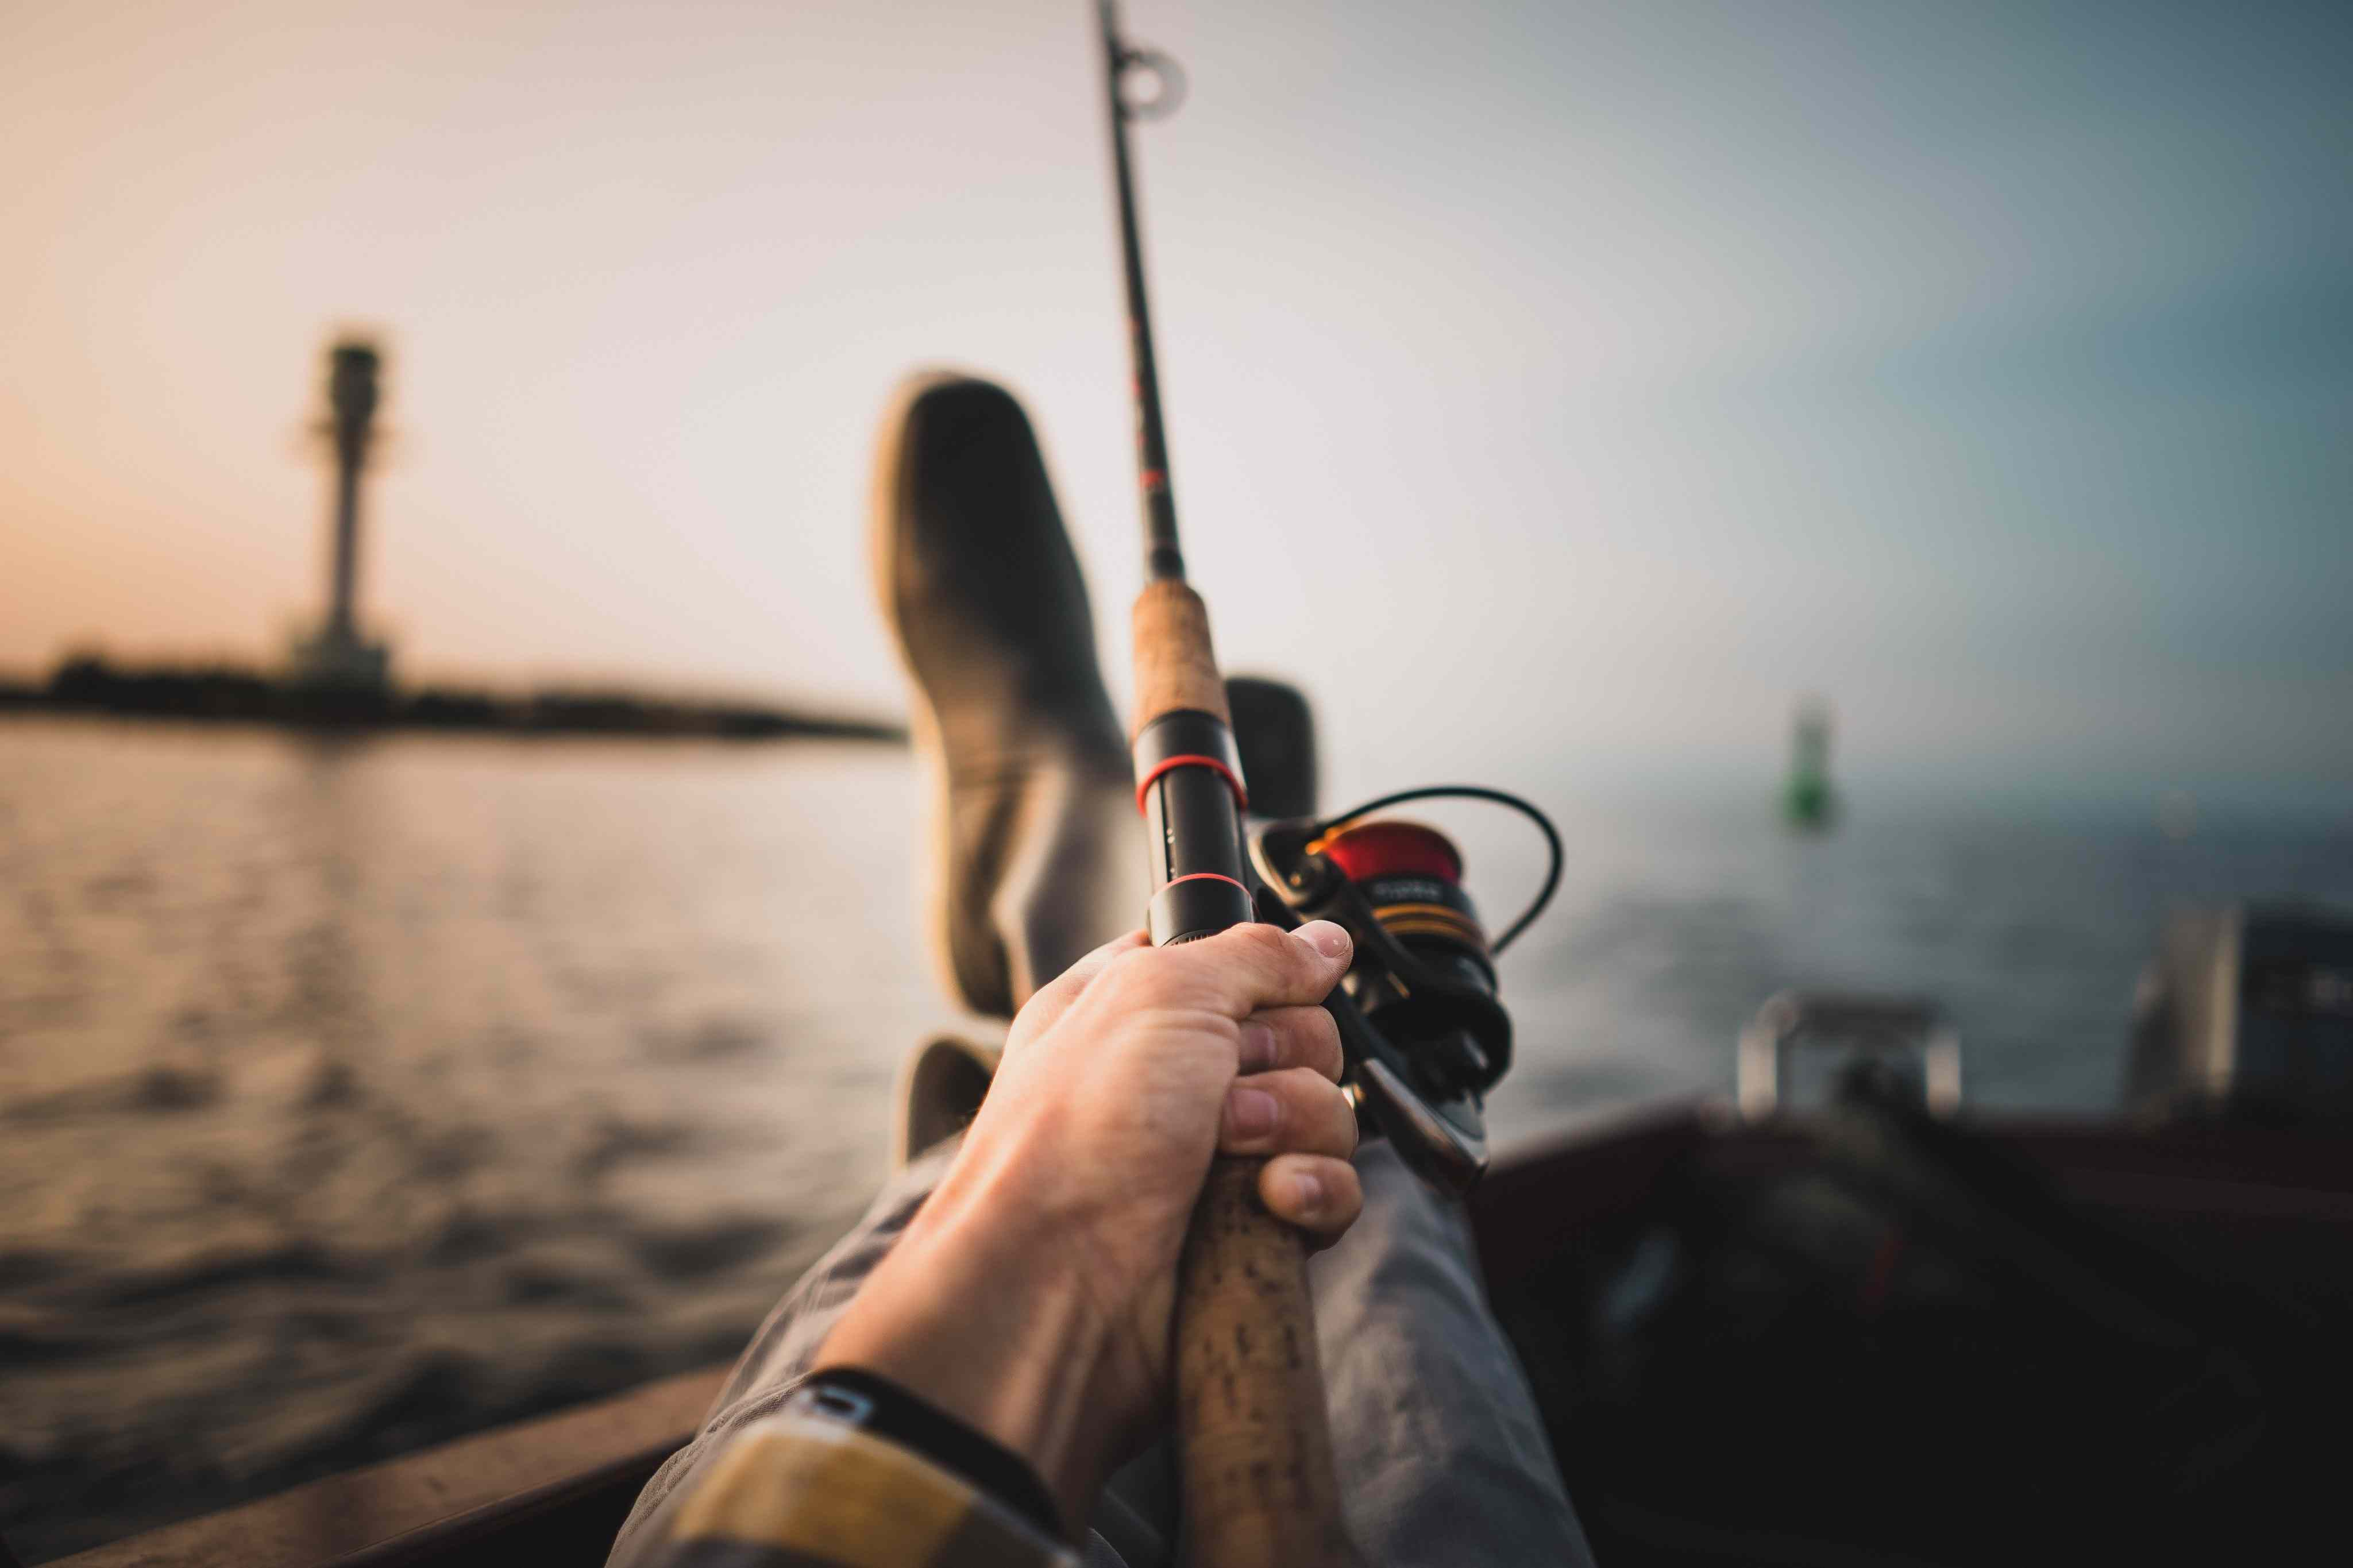 8 Reasons Why Youre Not Catching Fish